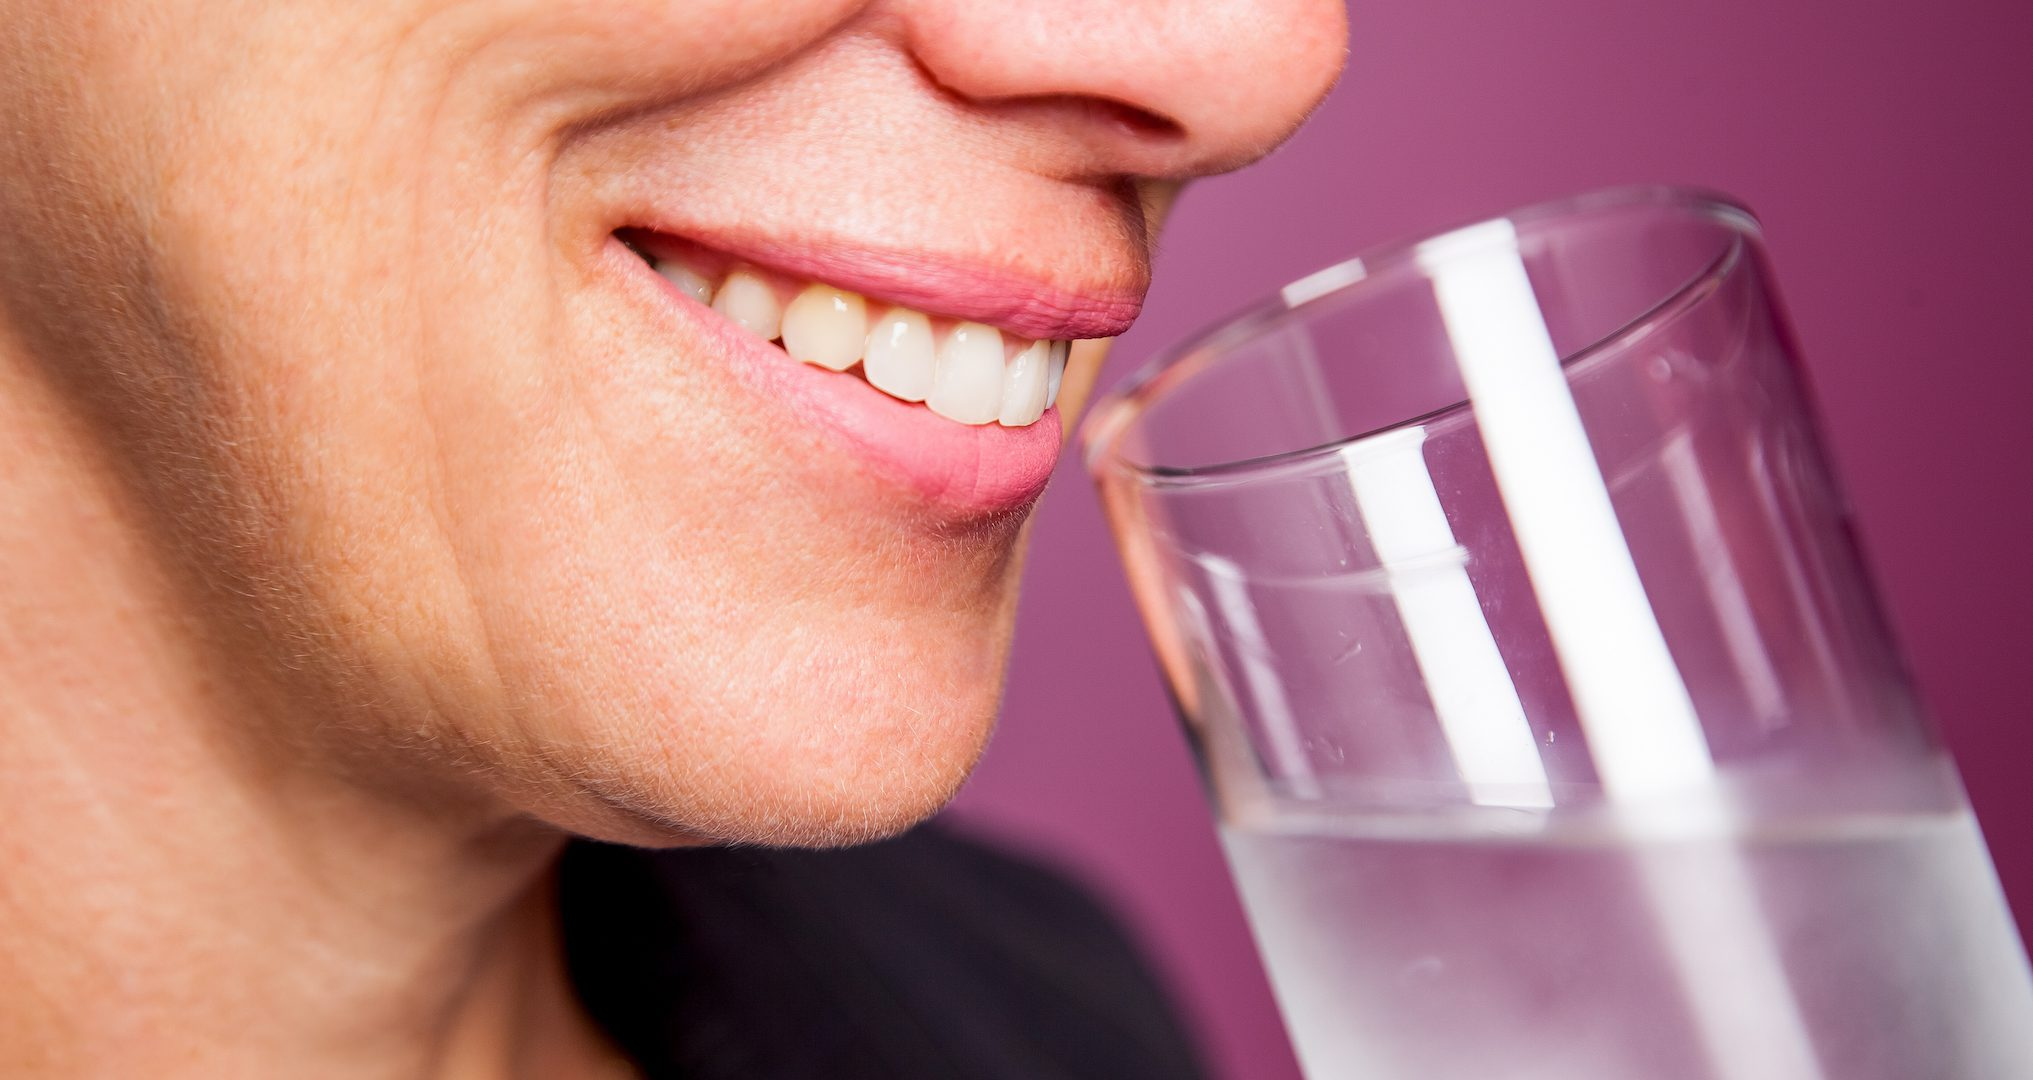 woman smiling and drinking a glass of water